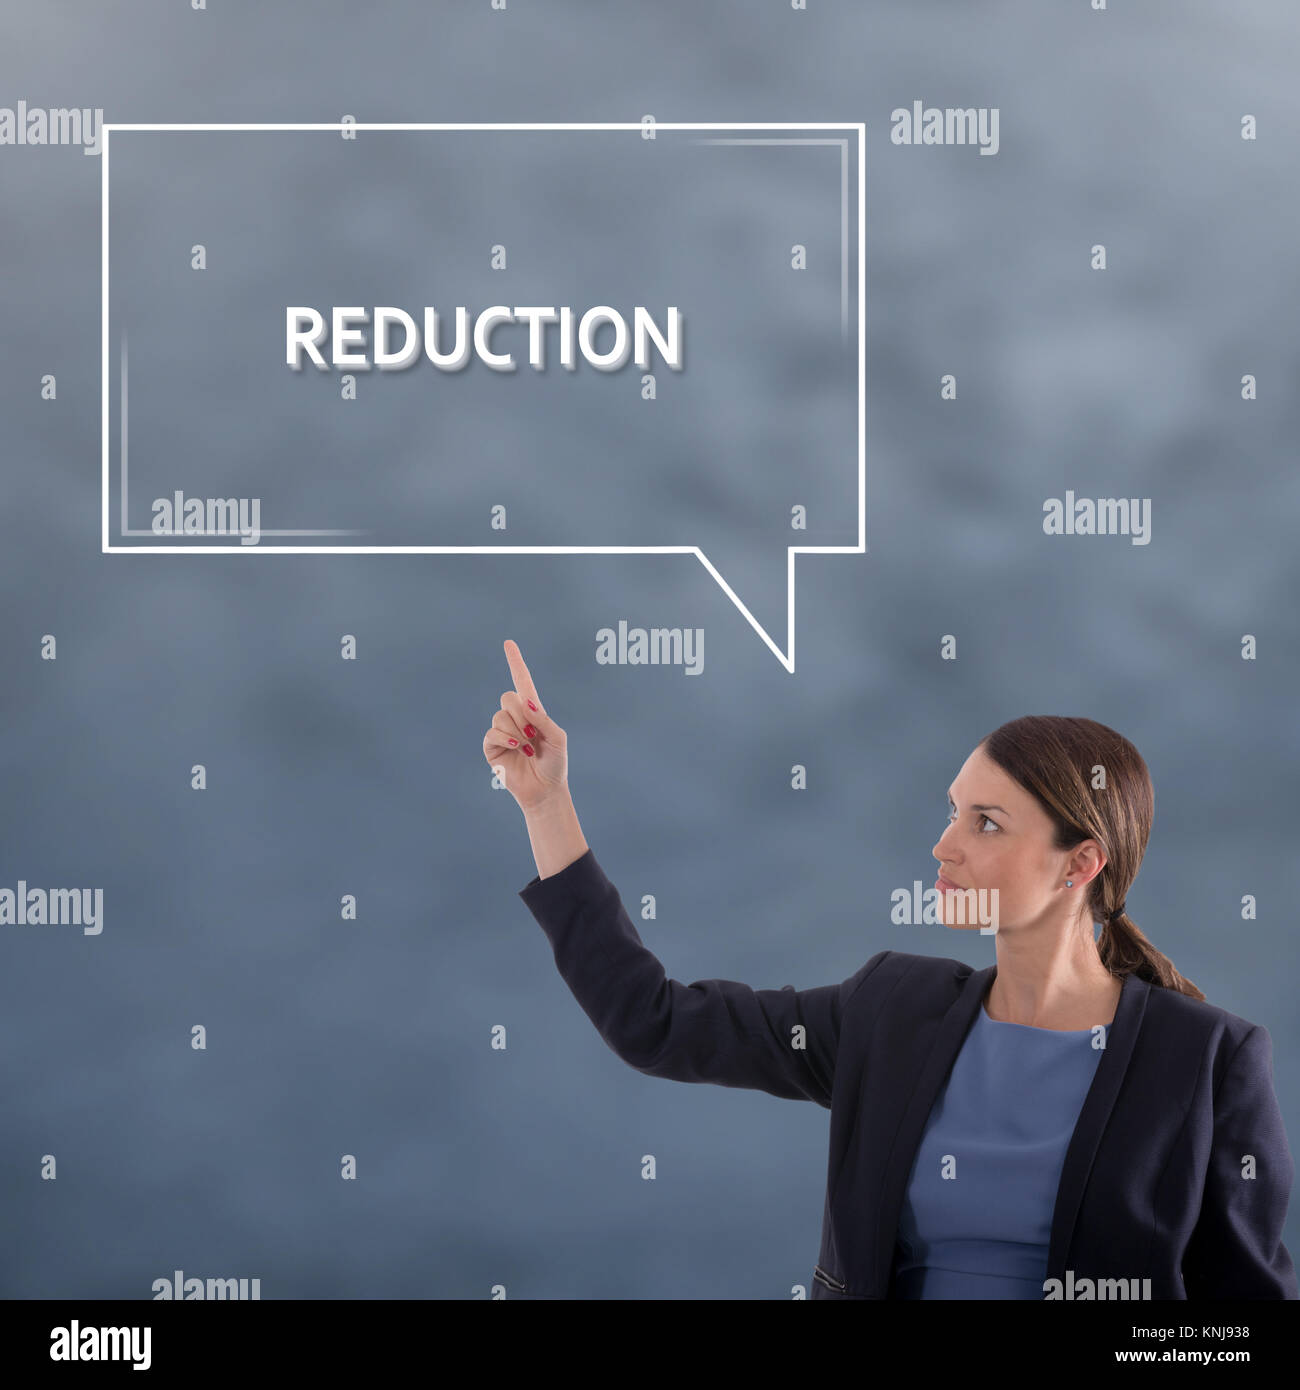 REDUCTION Business Concept. Business Woman Graphic Concept - Stock Image